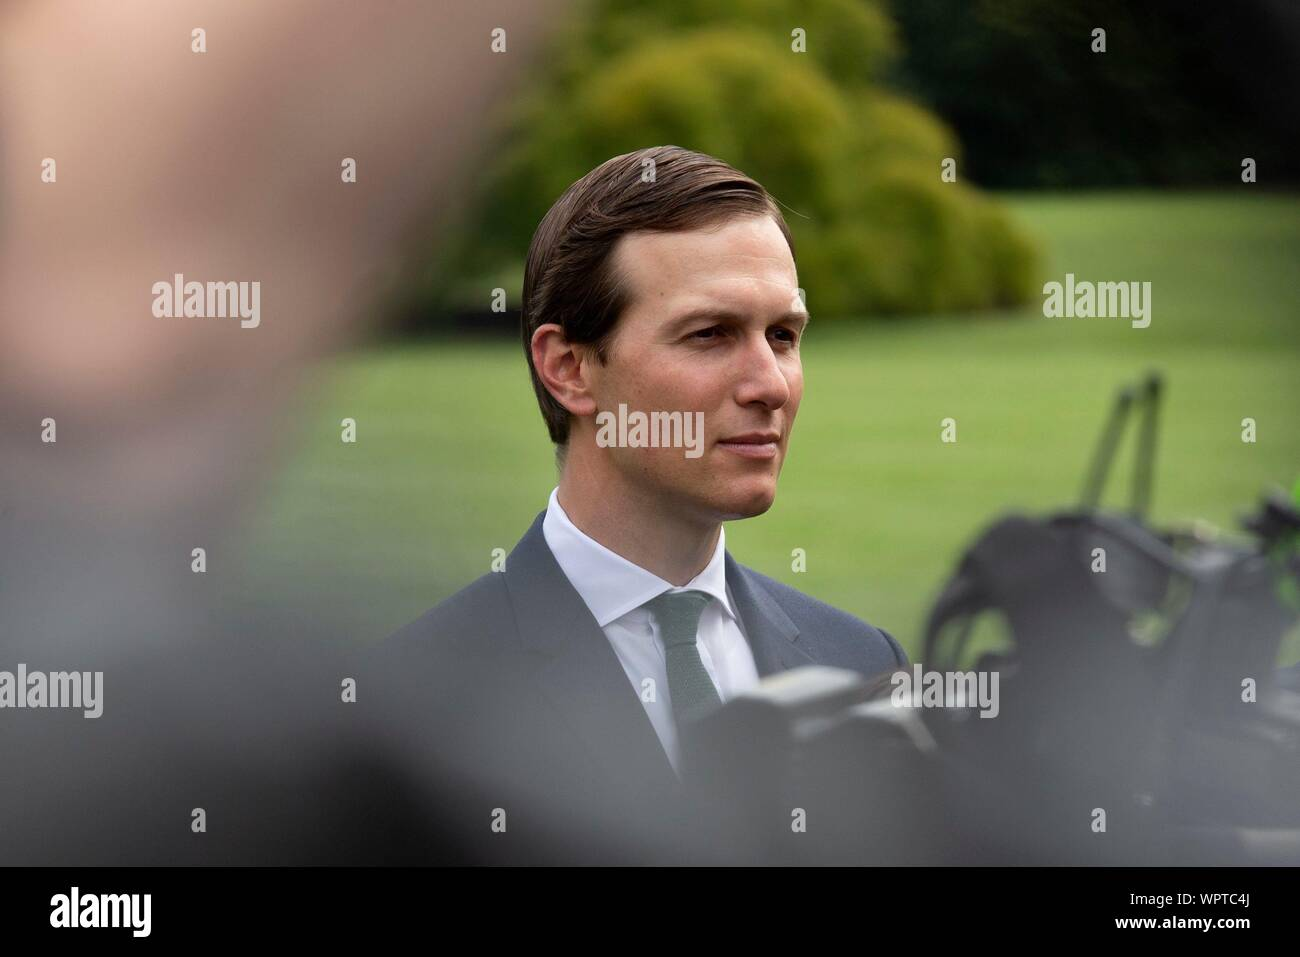 Washington, United States Of America. 09th Sep, 2019. Senior Advisor Jared Kushner listens to United States President Donald J. Trump speak to the press as he departs the White House in Washington, DC, U.S. for a rally in North Carolina on September 9, 2019. Credit: Stefani Reynolds/CNP | usage worldwide Credit: dpa/Alamy Live News Stock Photo